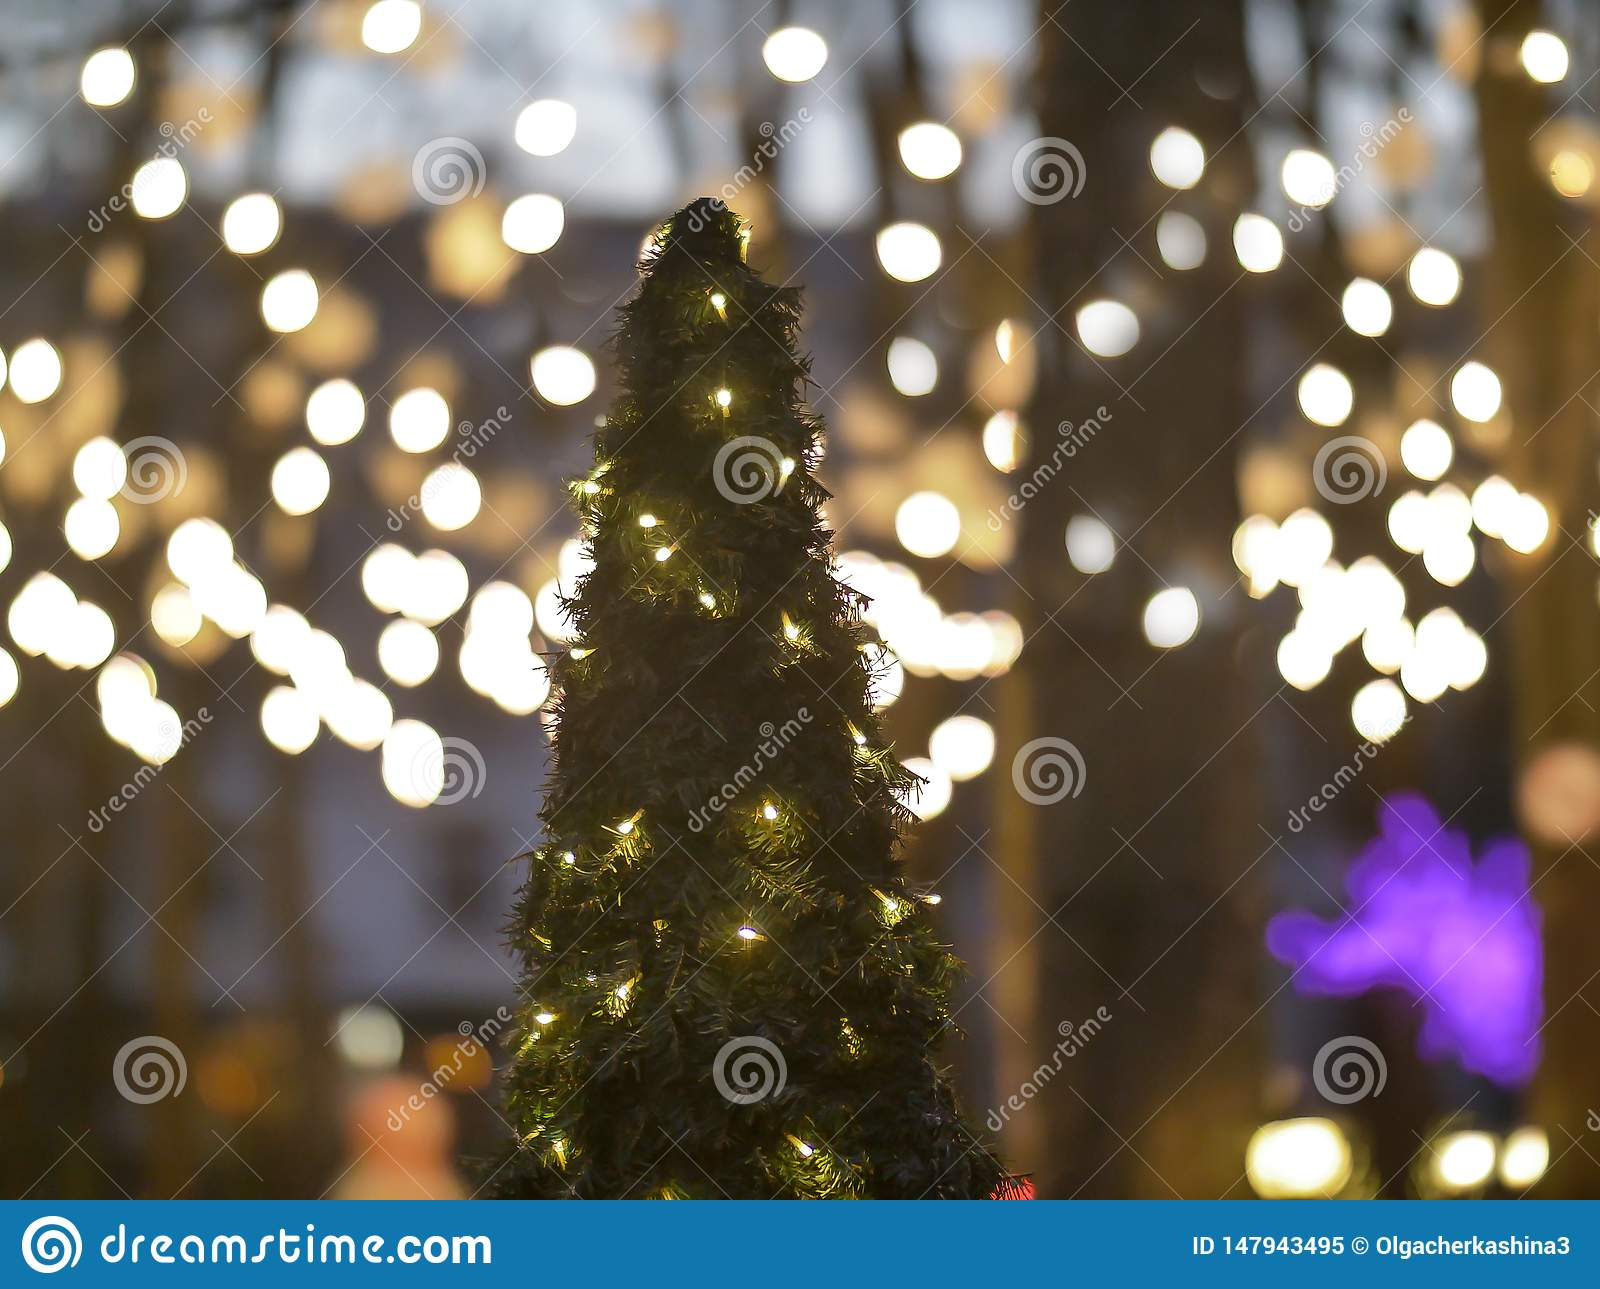 Christmas Tree Decorated With Lanterns Stands In A Park On The Street Holiday Concept Stock Image Image Of Decoration Celebration 147943495